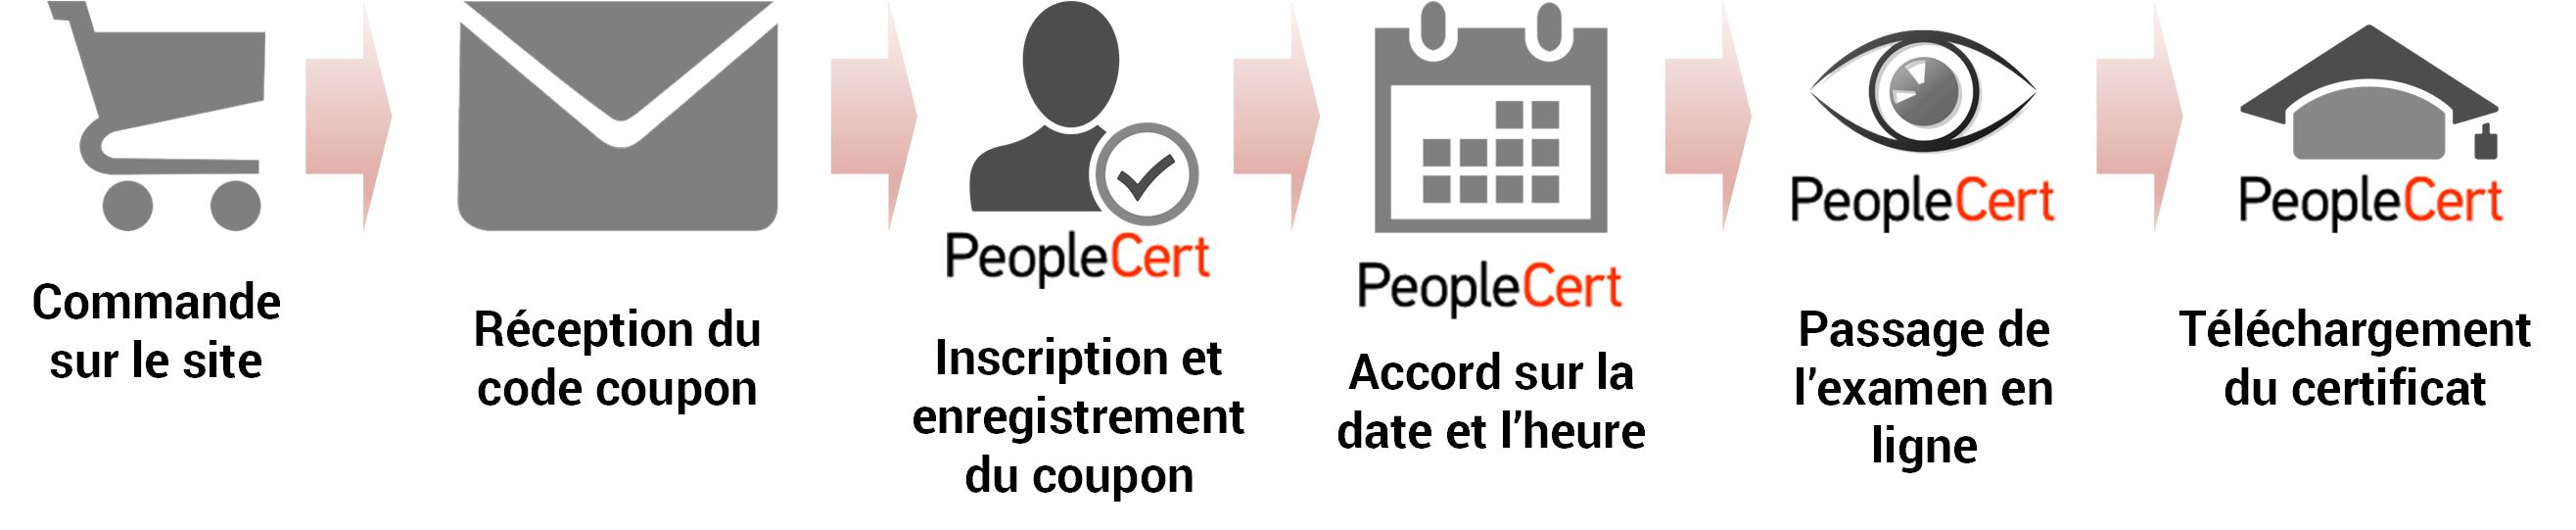 voucher-peoplecert.jpg